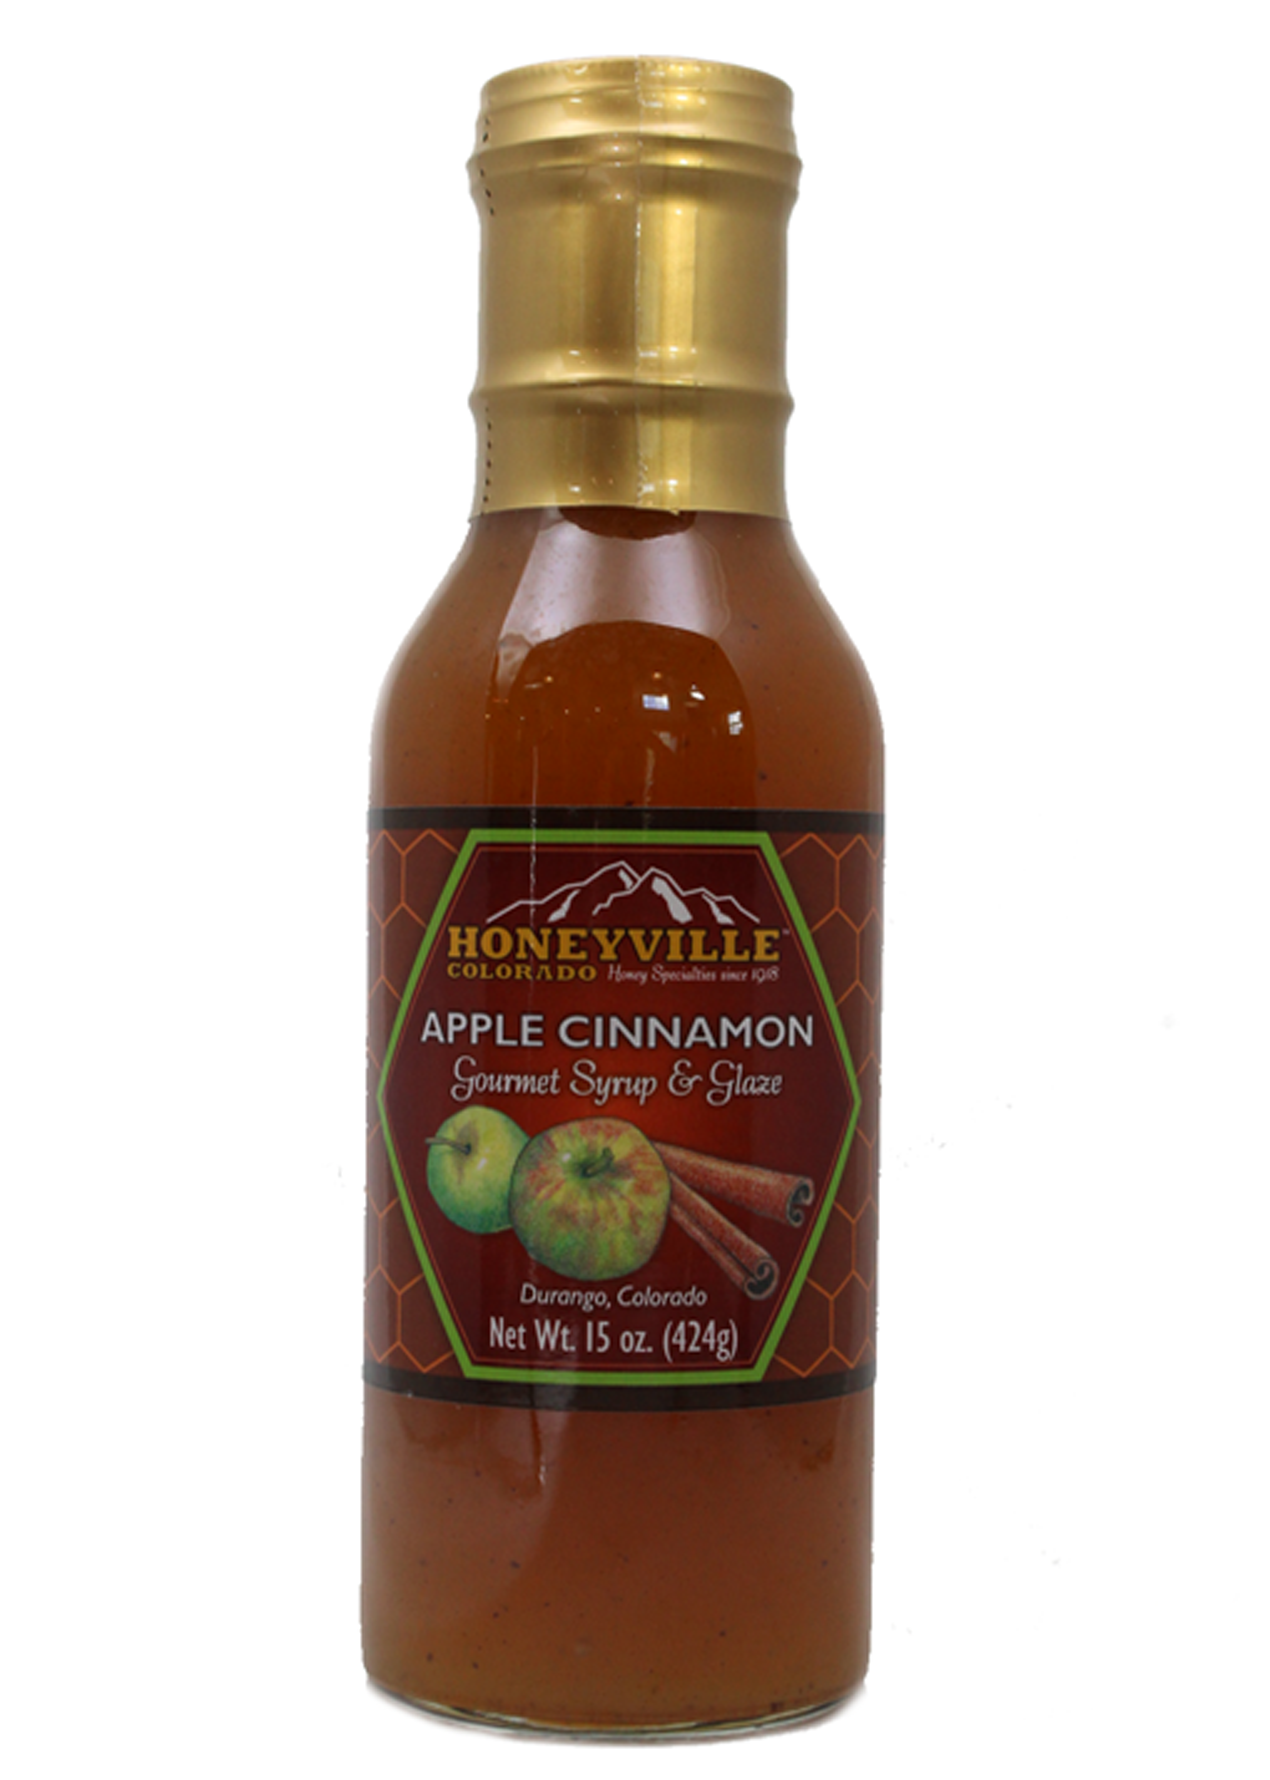 APPLE CINNAMON HONEY SYRUP